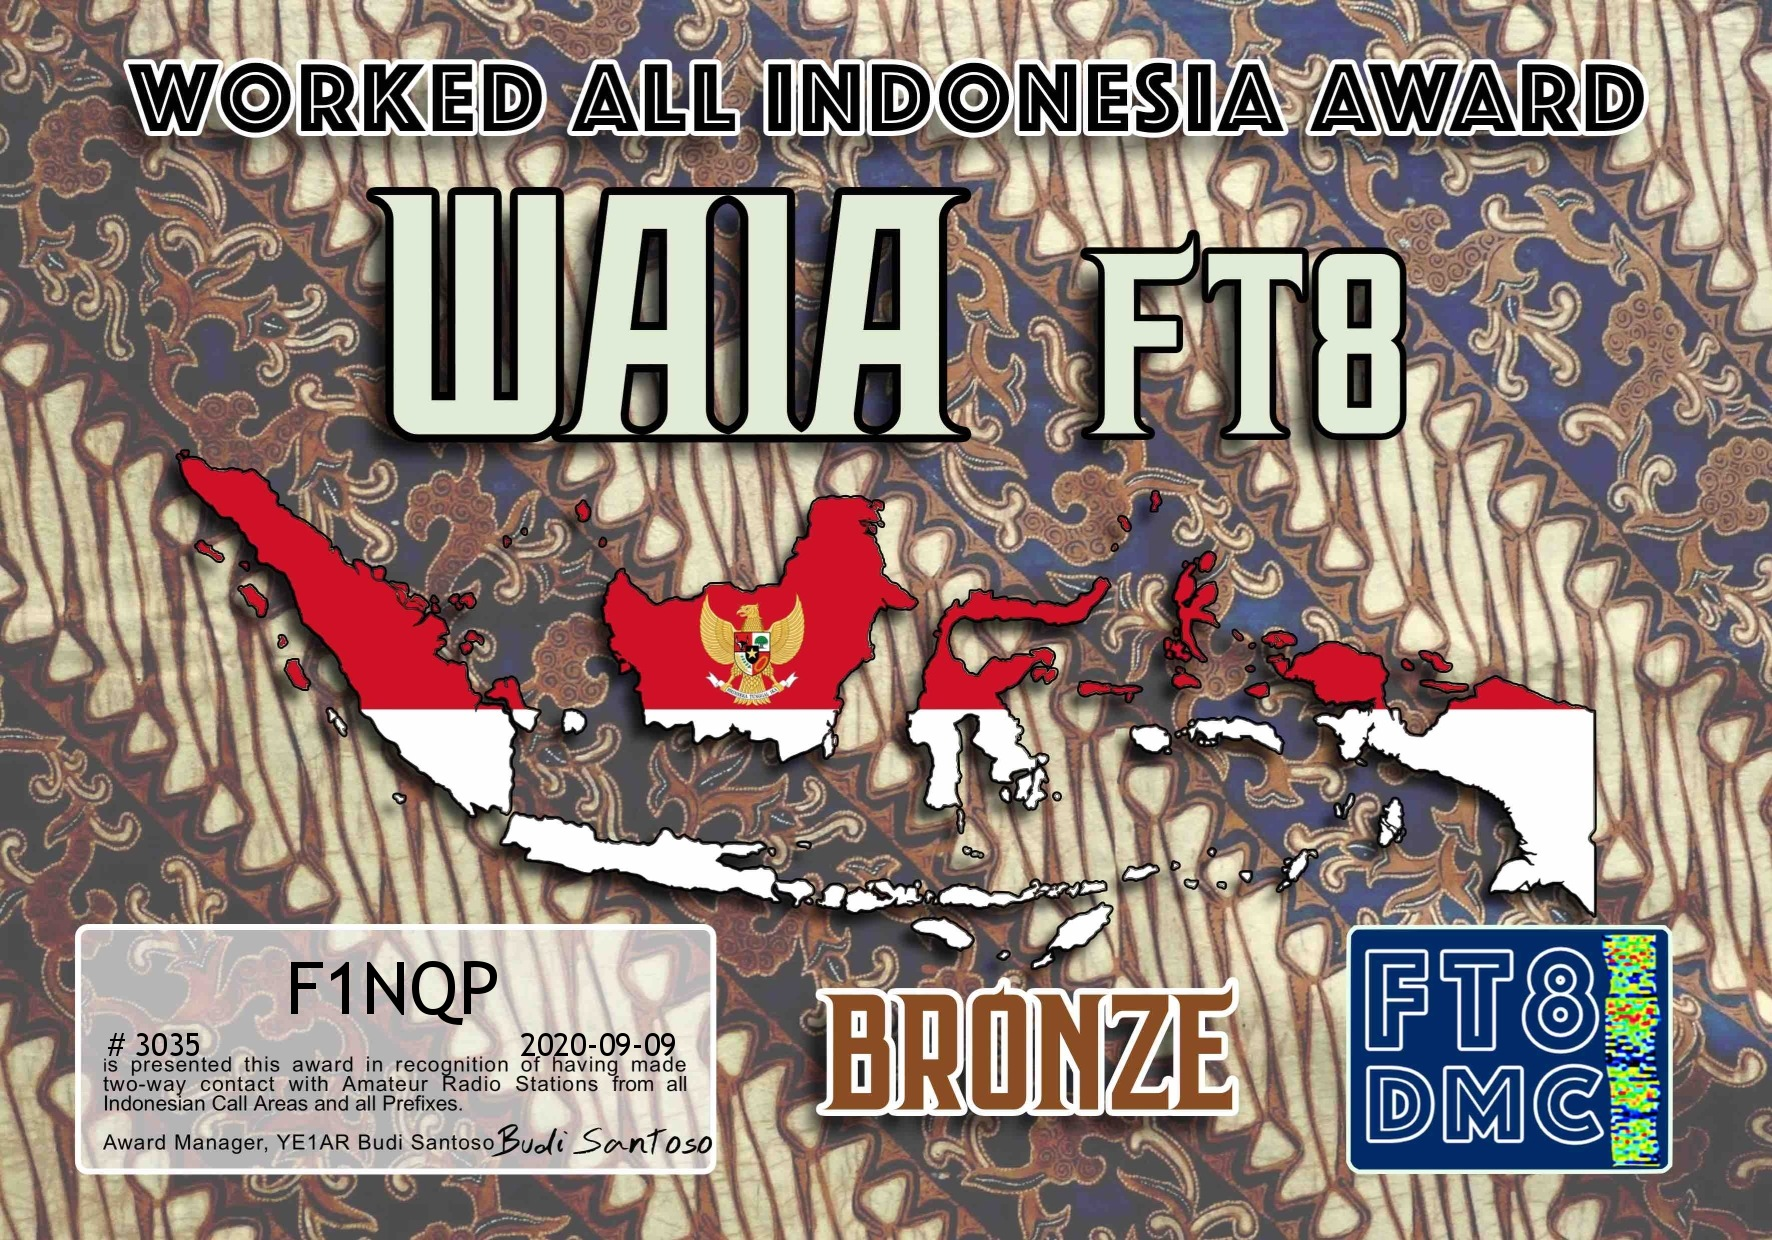 F1NQP-WAIA-BRONZE_FT8DMC.jpg